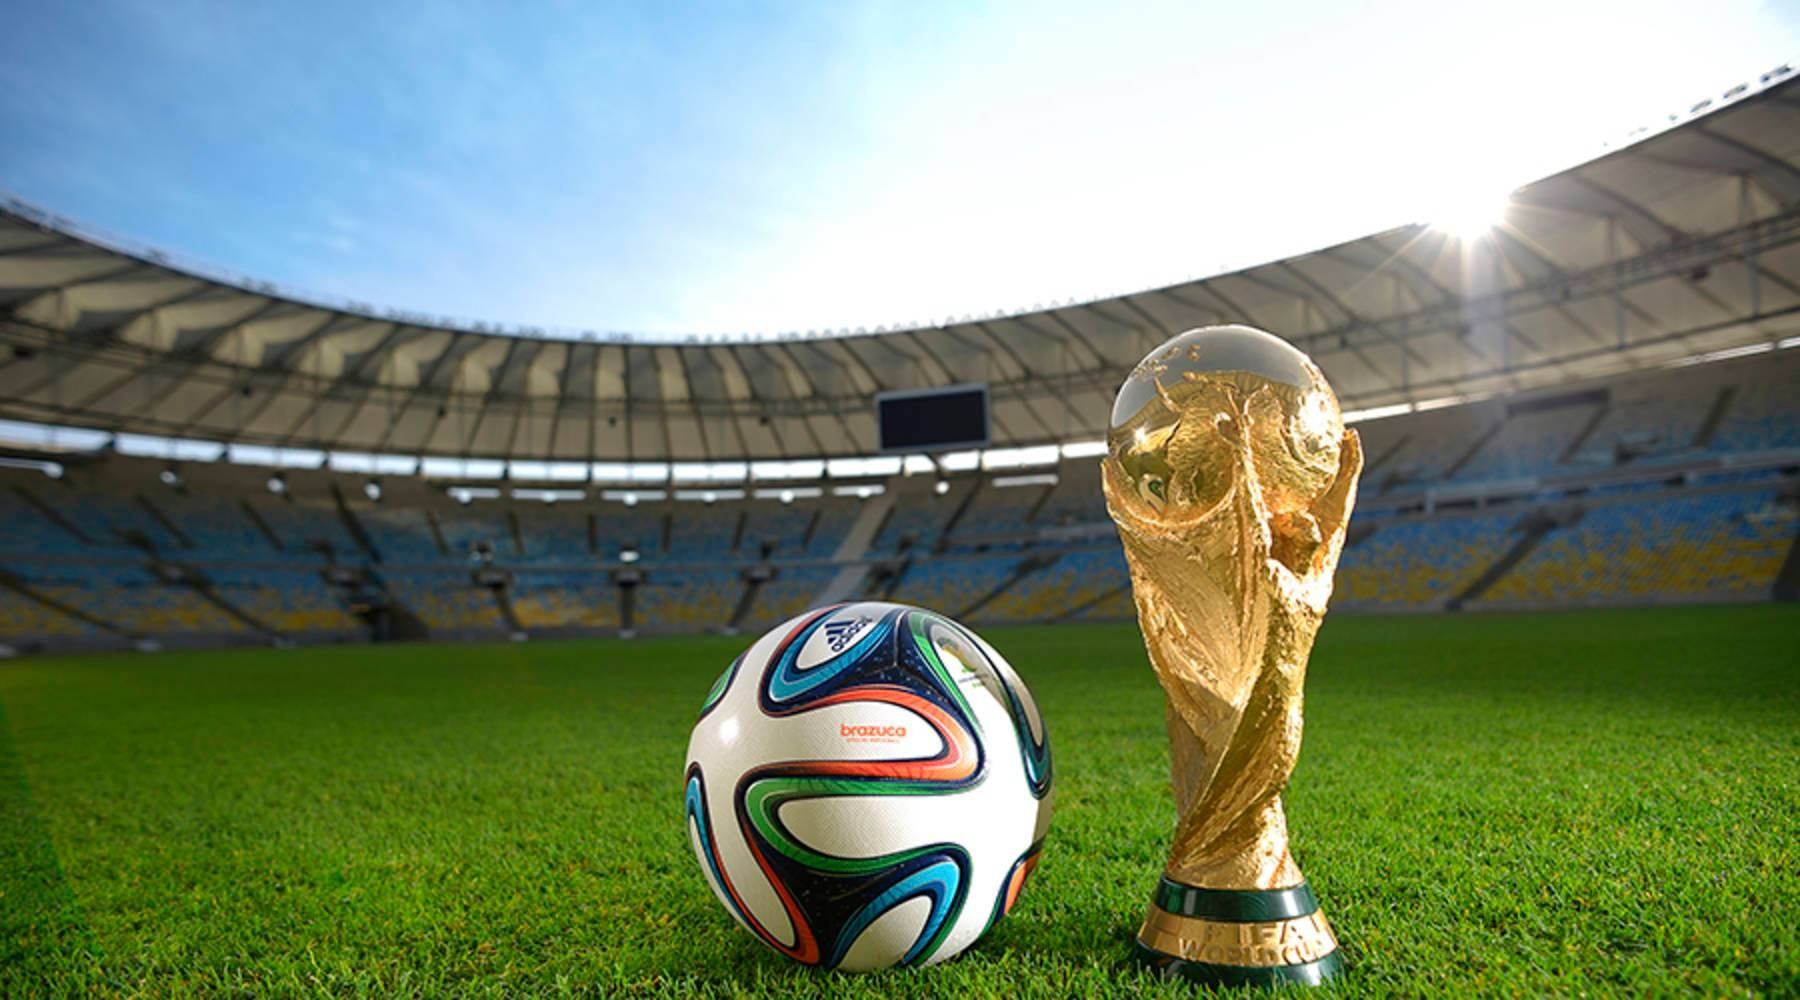 A general view of Brazuca and the FIFA World Cup Trophy at the Maracana before the adidas Brazuca launch at Parque Lage on December 3, 2013 in Rio de Janeiro, Brazil. Alexandre Loureiro/Getty Images for adidas